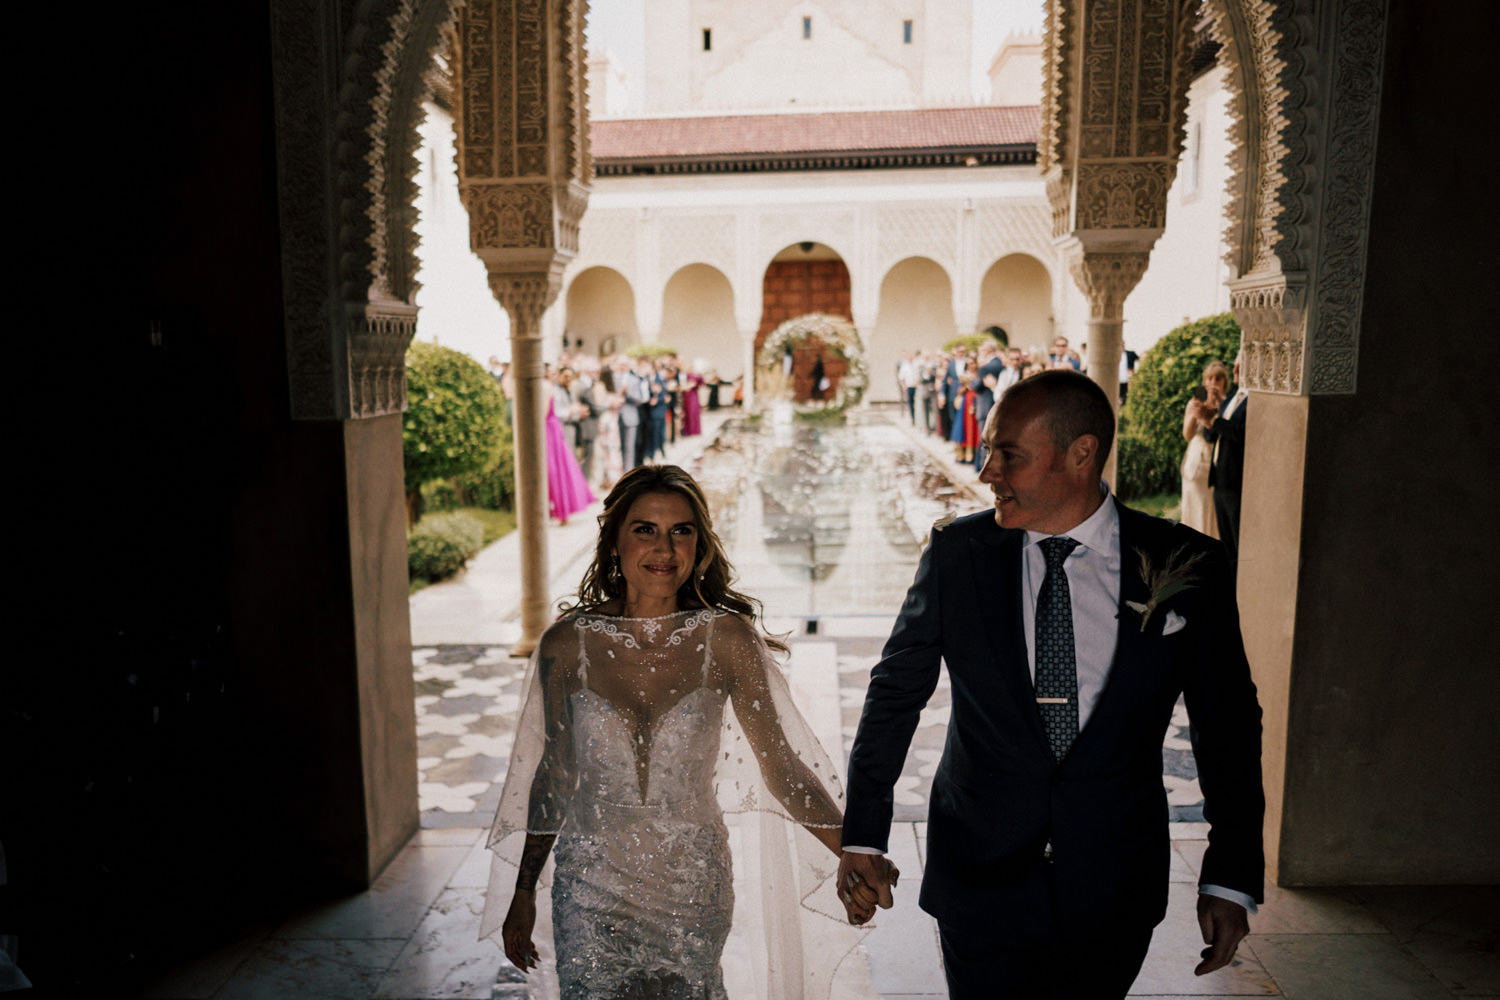 468-marrakech-wedding.jpg